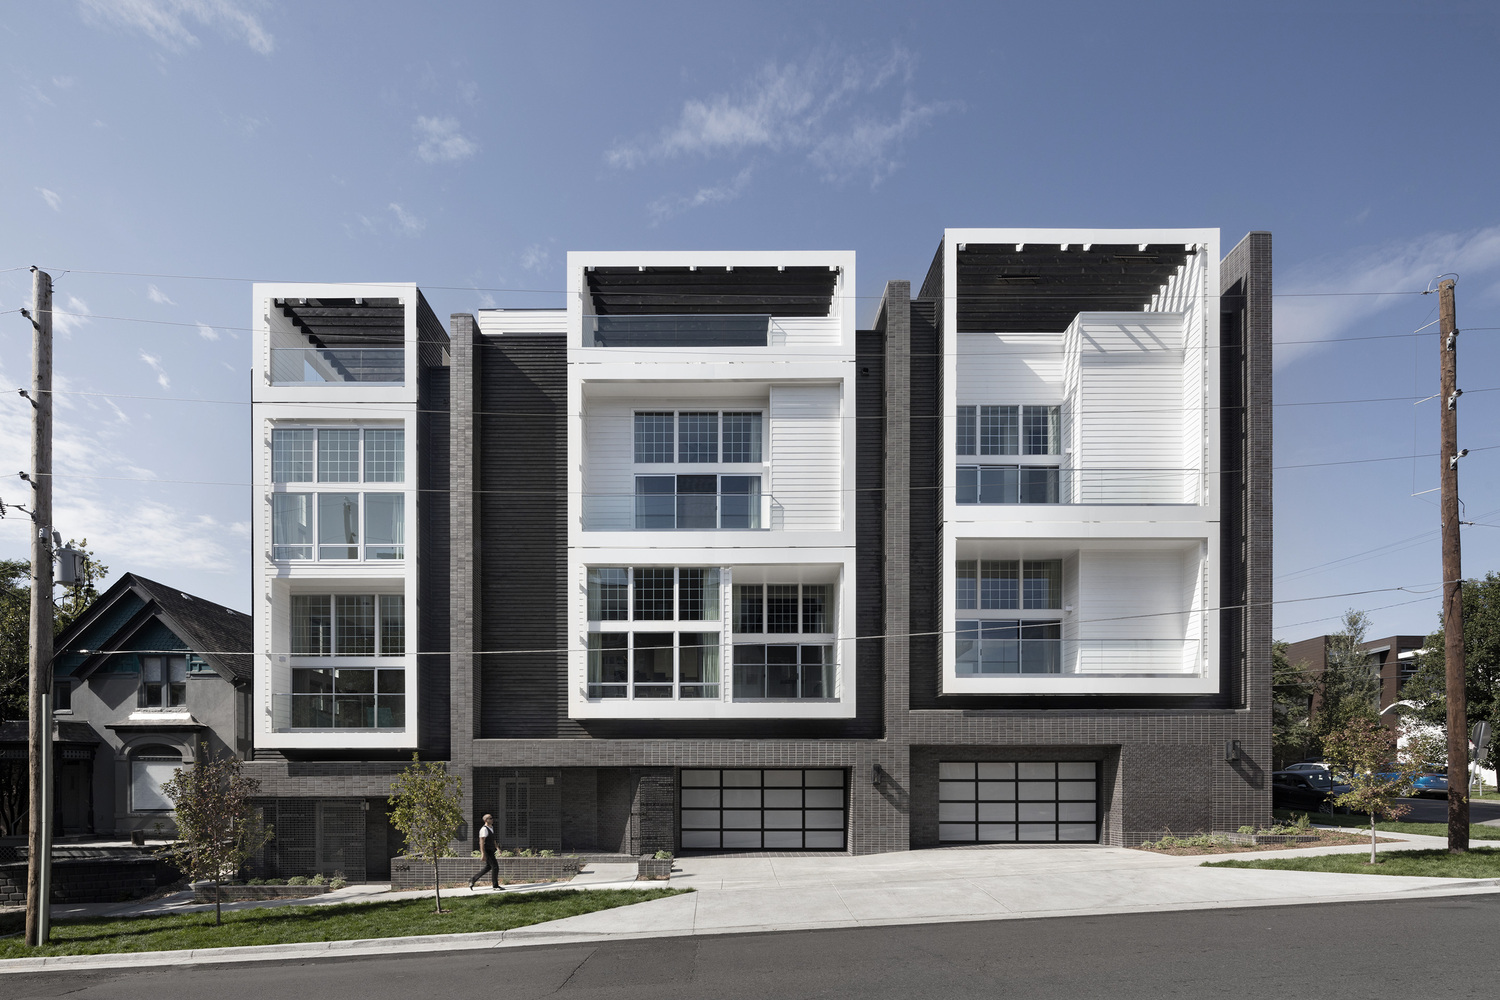 1_18th & Boulder Townhomes_Meridian 105 Architecture_Inspirationist